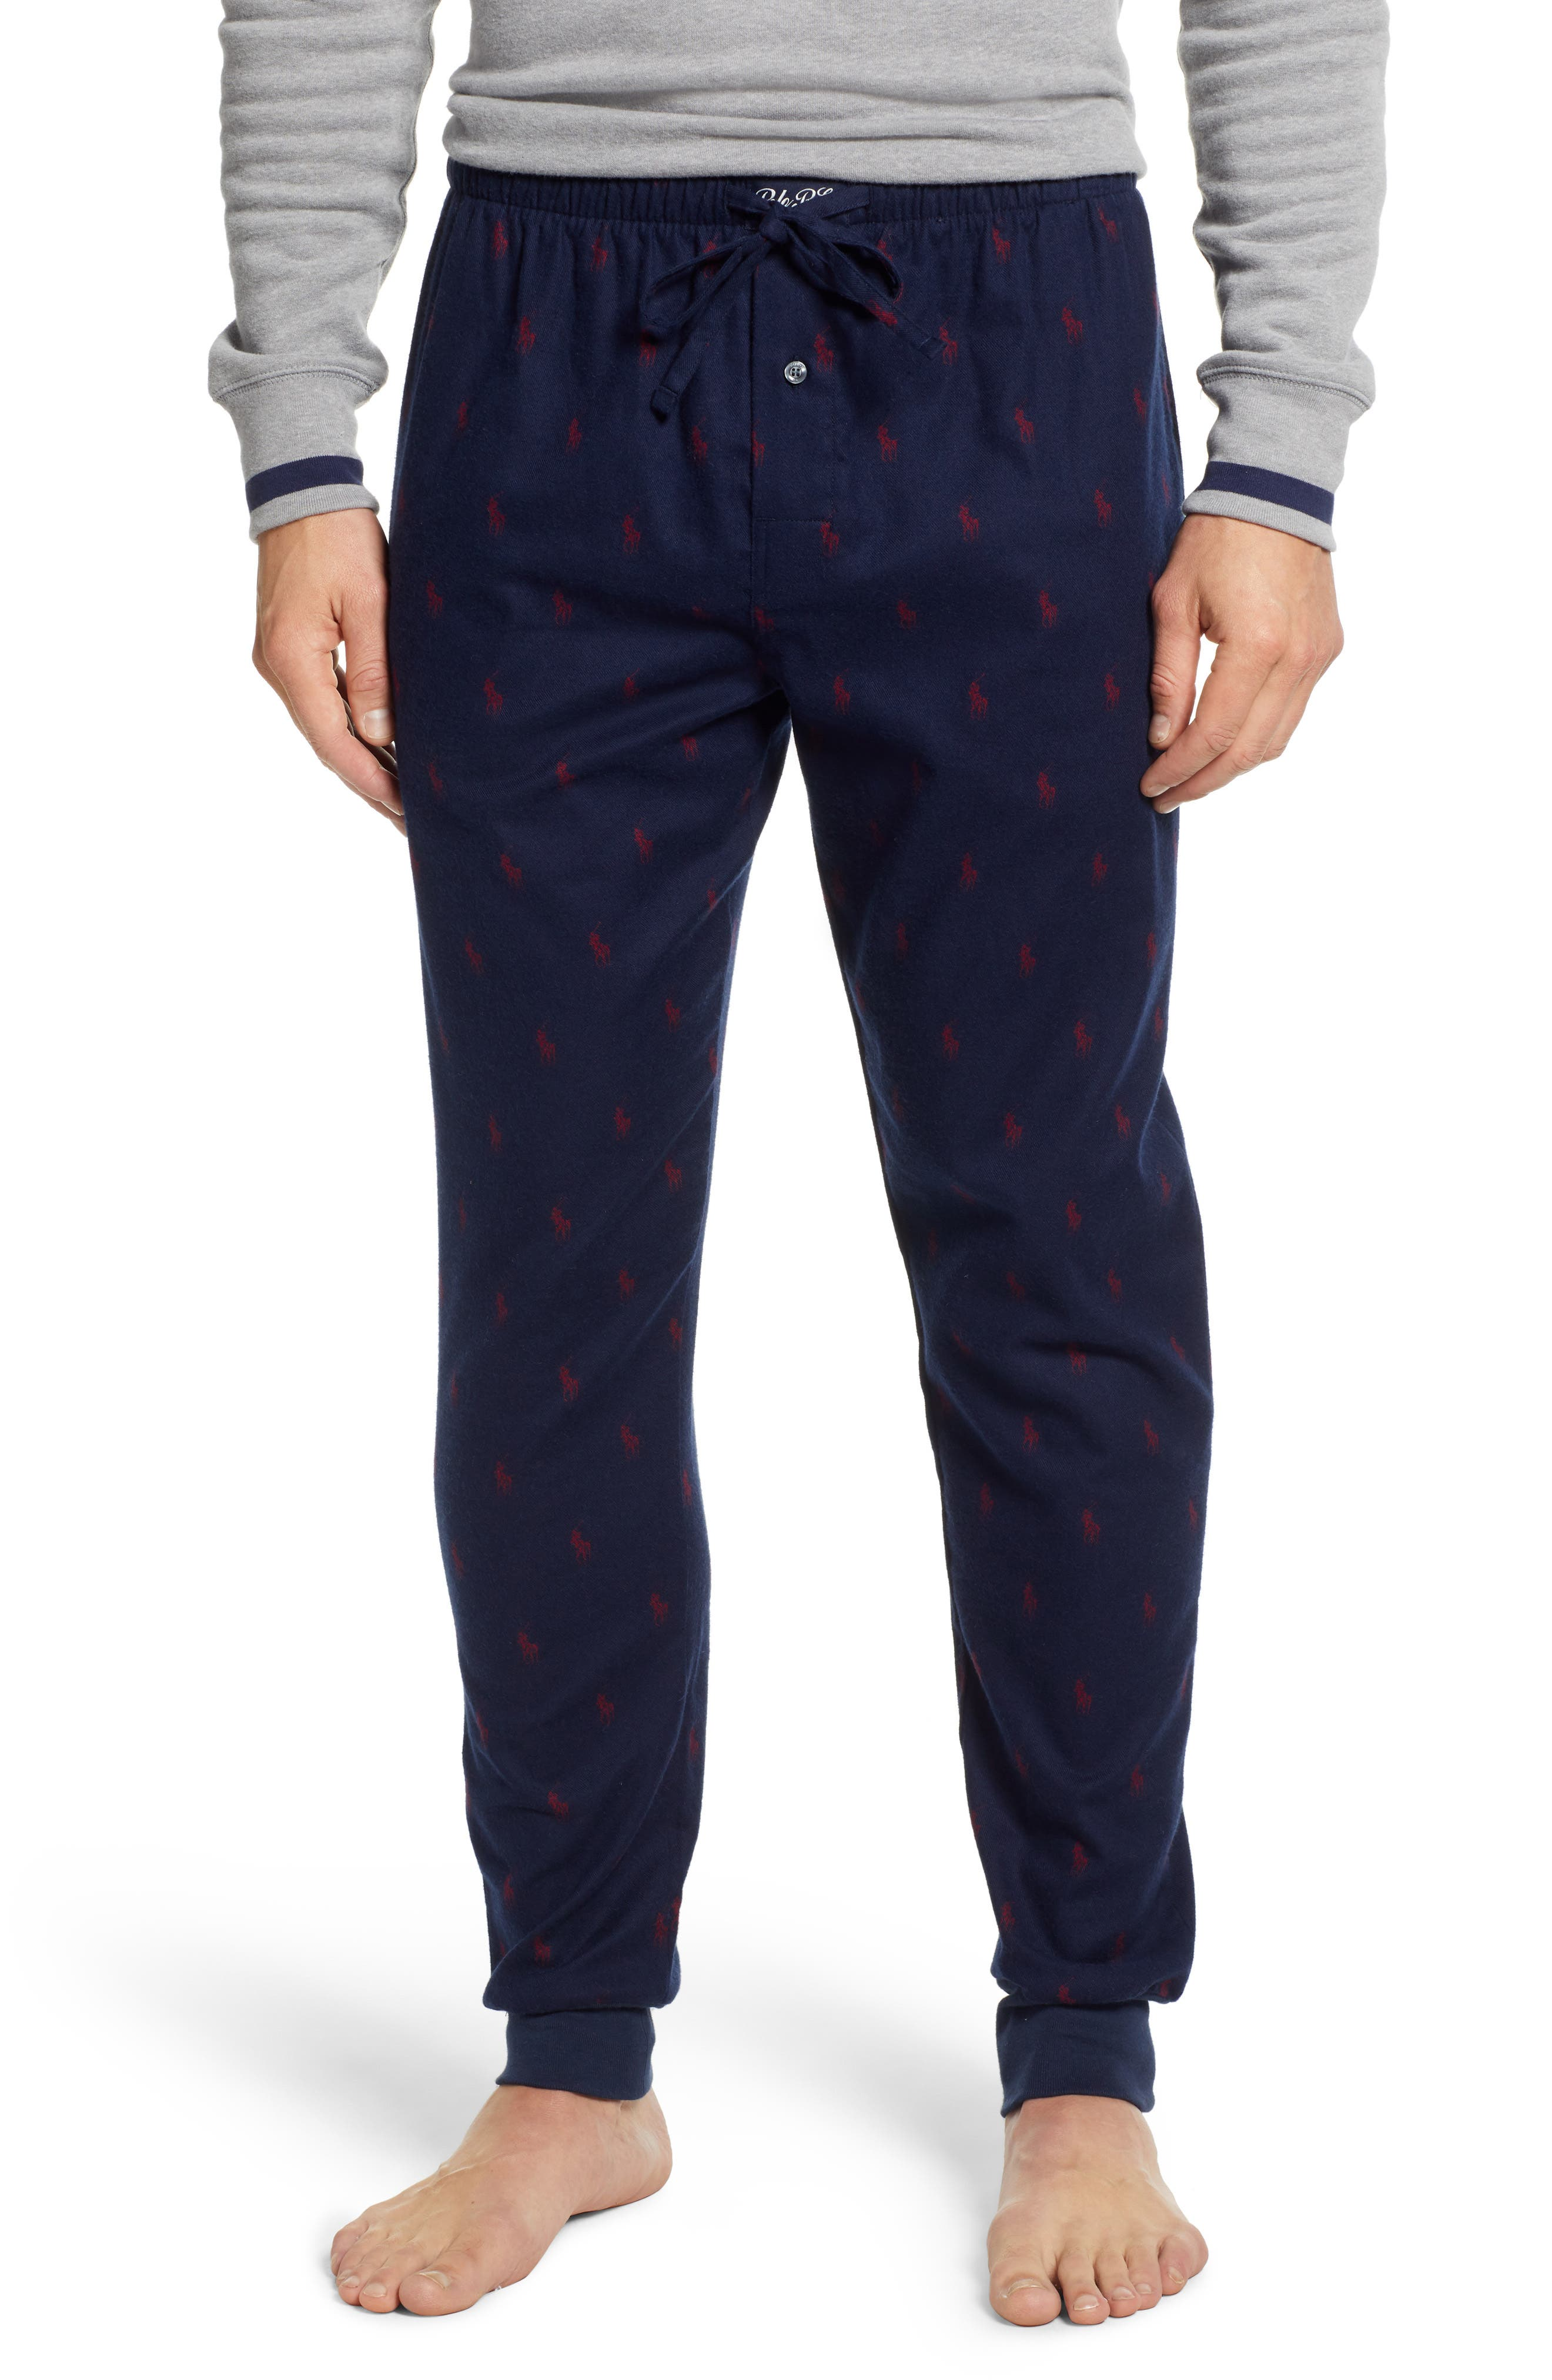 POLO RALPH LAUREN Flannel Cotton Jogger Pants, Main, color, CRUISE NAVY/ HOLIDAY RED